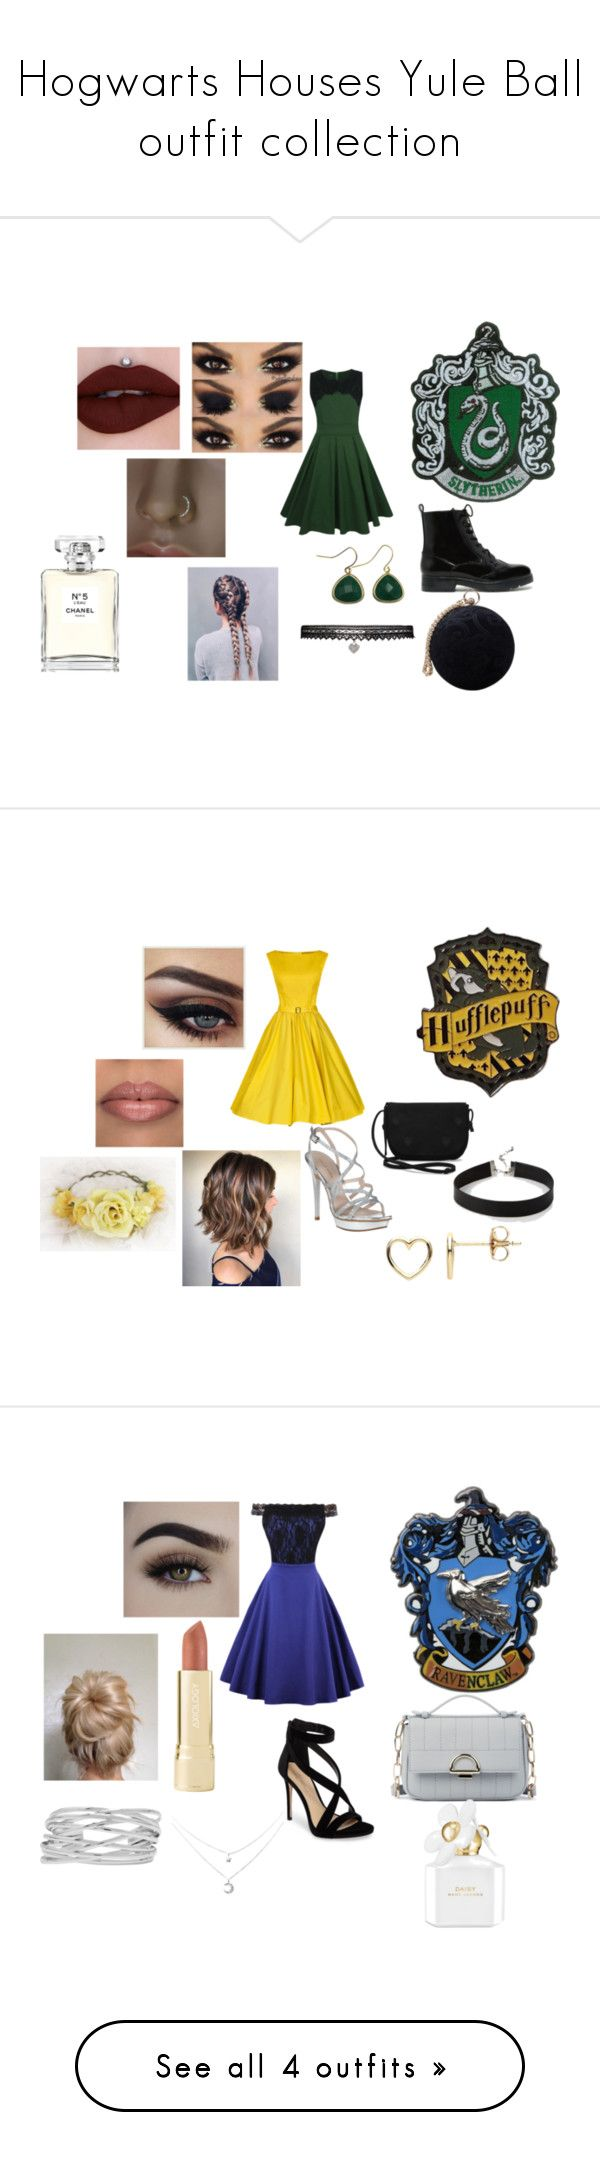 """""""Hogwarts Houses Yule Ball outfit collection"""" by hannahpb2004 on Polyvore featuring CHARLES & KEITH, WithChic, Carvela, Betsey Johnson, Zara Taylor, Jeffree Star, Chanel, Pelle Moda, TOMS and Express"""